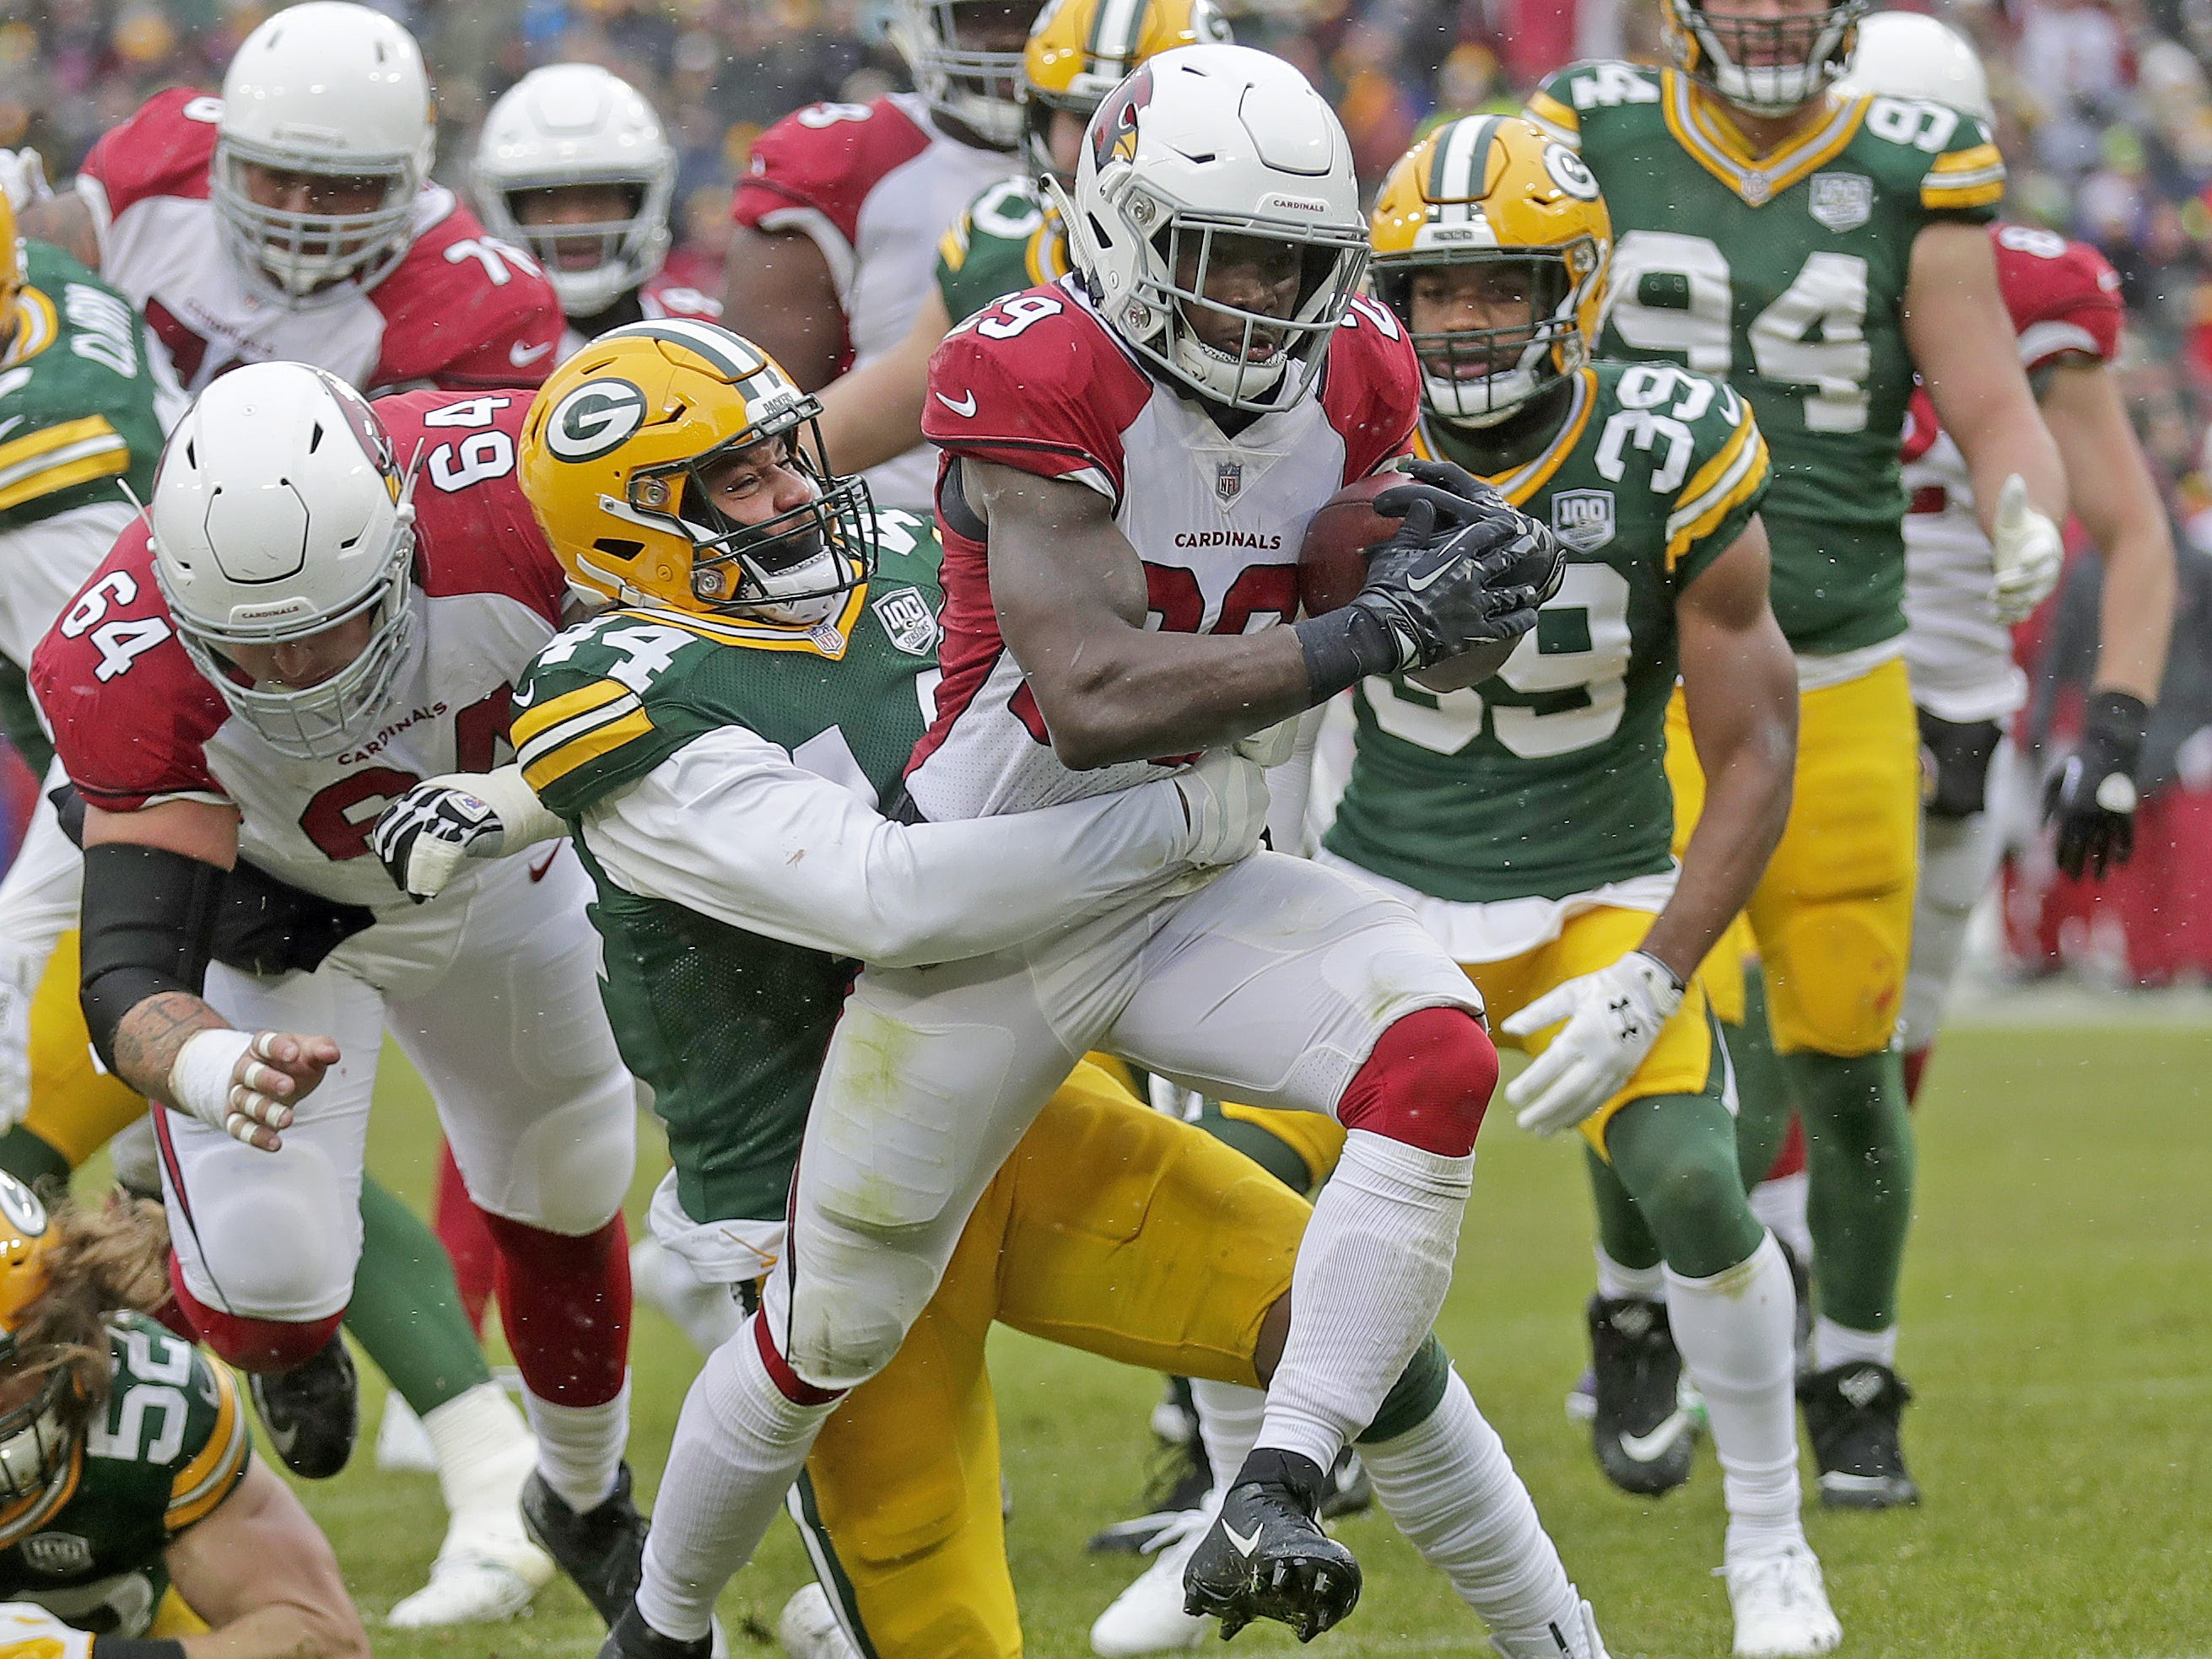 Green Bay Packers inside linebacker Antonio Morrison (44) is carried into the end zone by Arizona Cardinals running back Chase Edmonds (29)against the Arizona Cardinals Sunday, December 2, 2018 at Lambeau Field in Green Bay, Wis. Jim Matthews/USA TODAY NETWORK-Wis